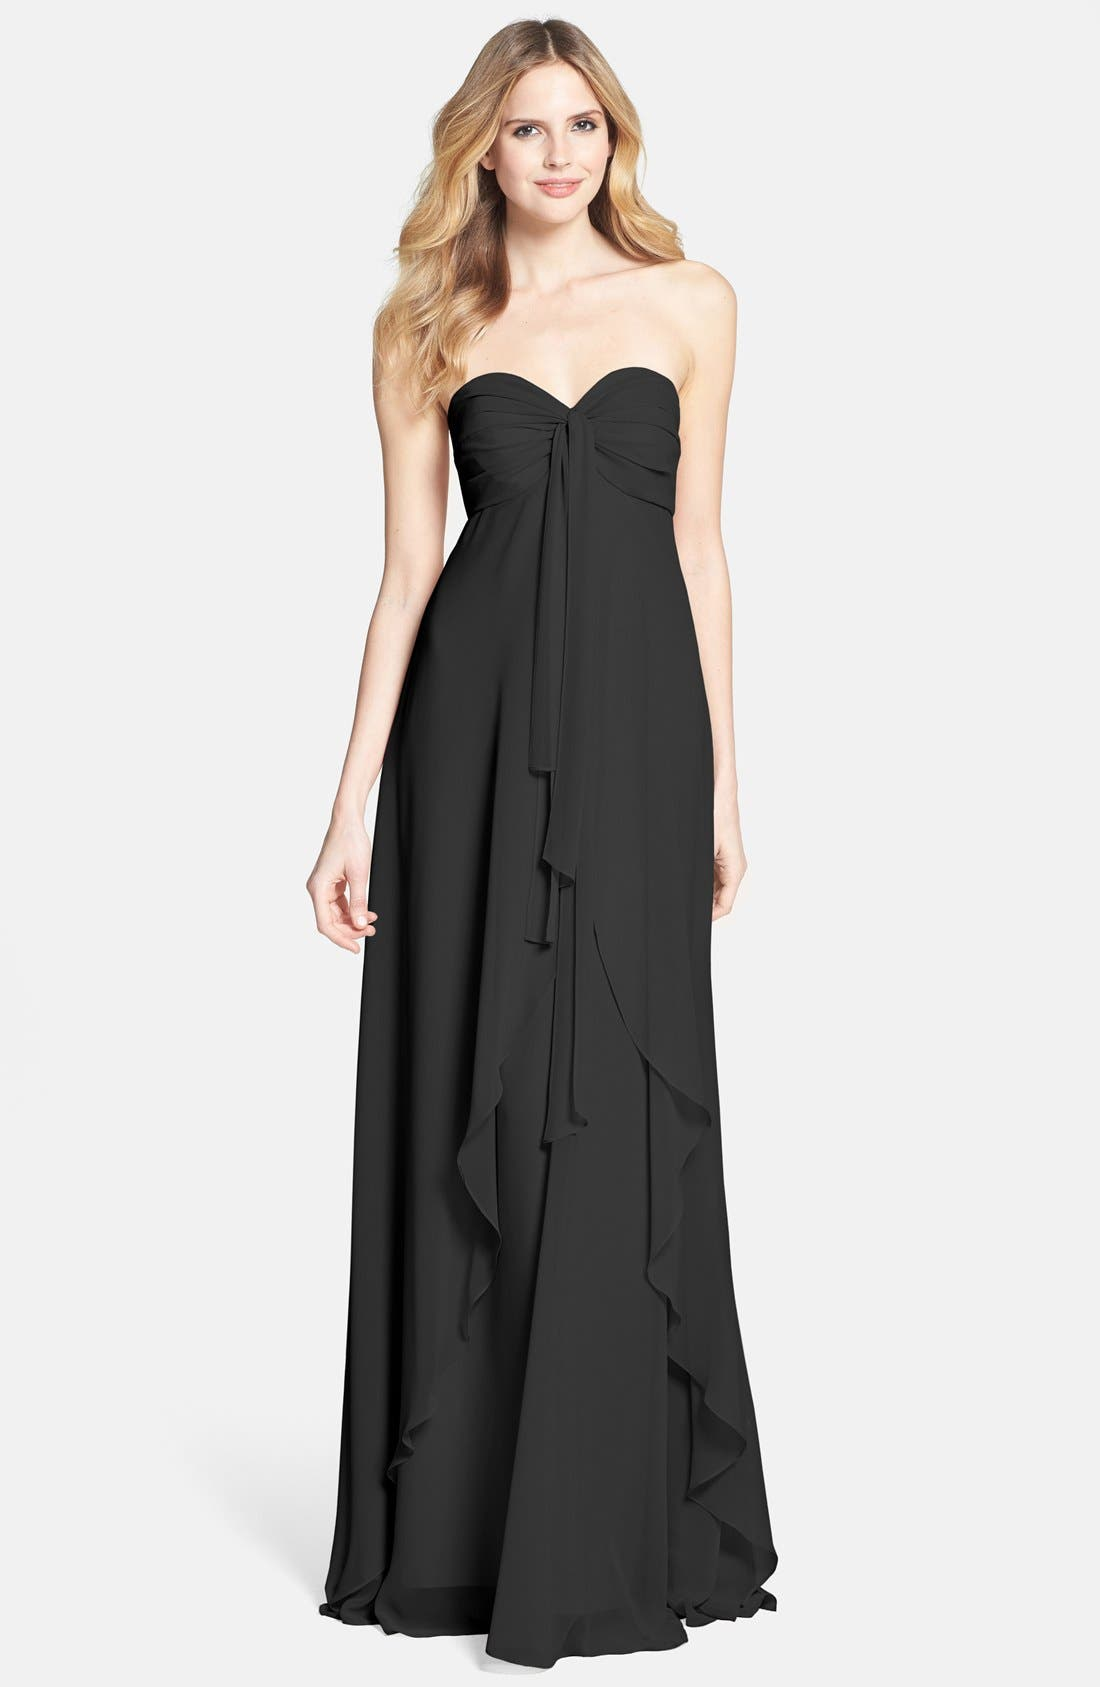 Alternate Image 1 Selected - Jenny Yoo 'Suri' Convertible Strapless Chiffon Dress